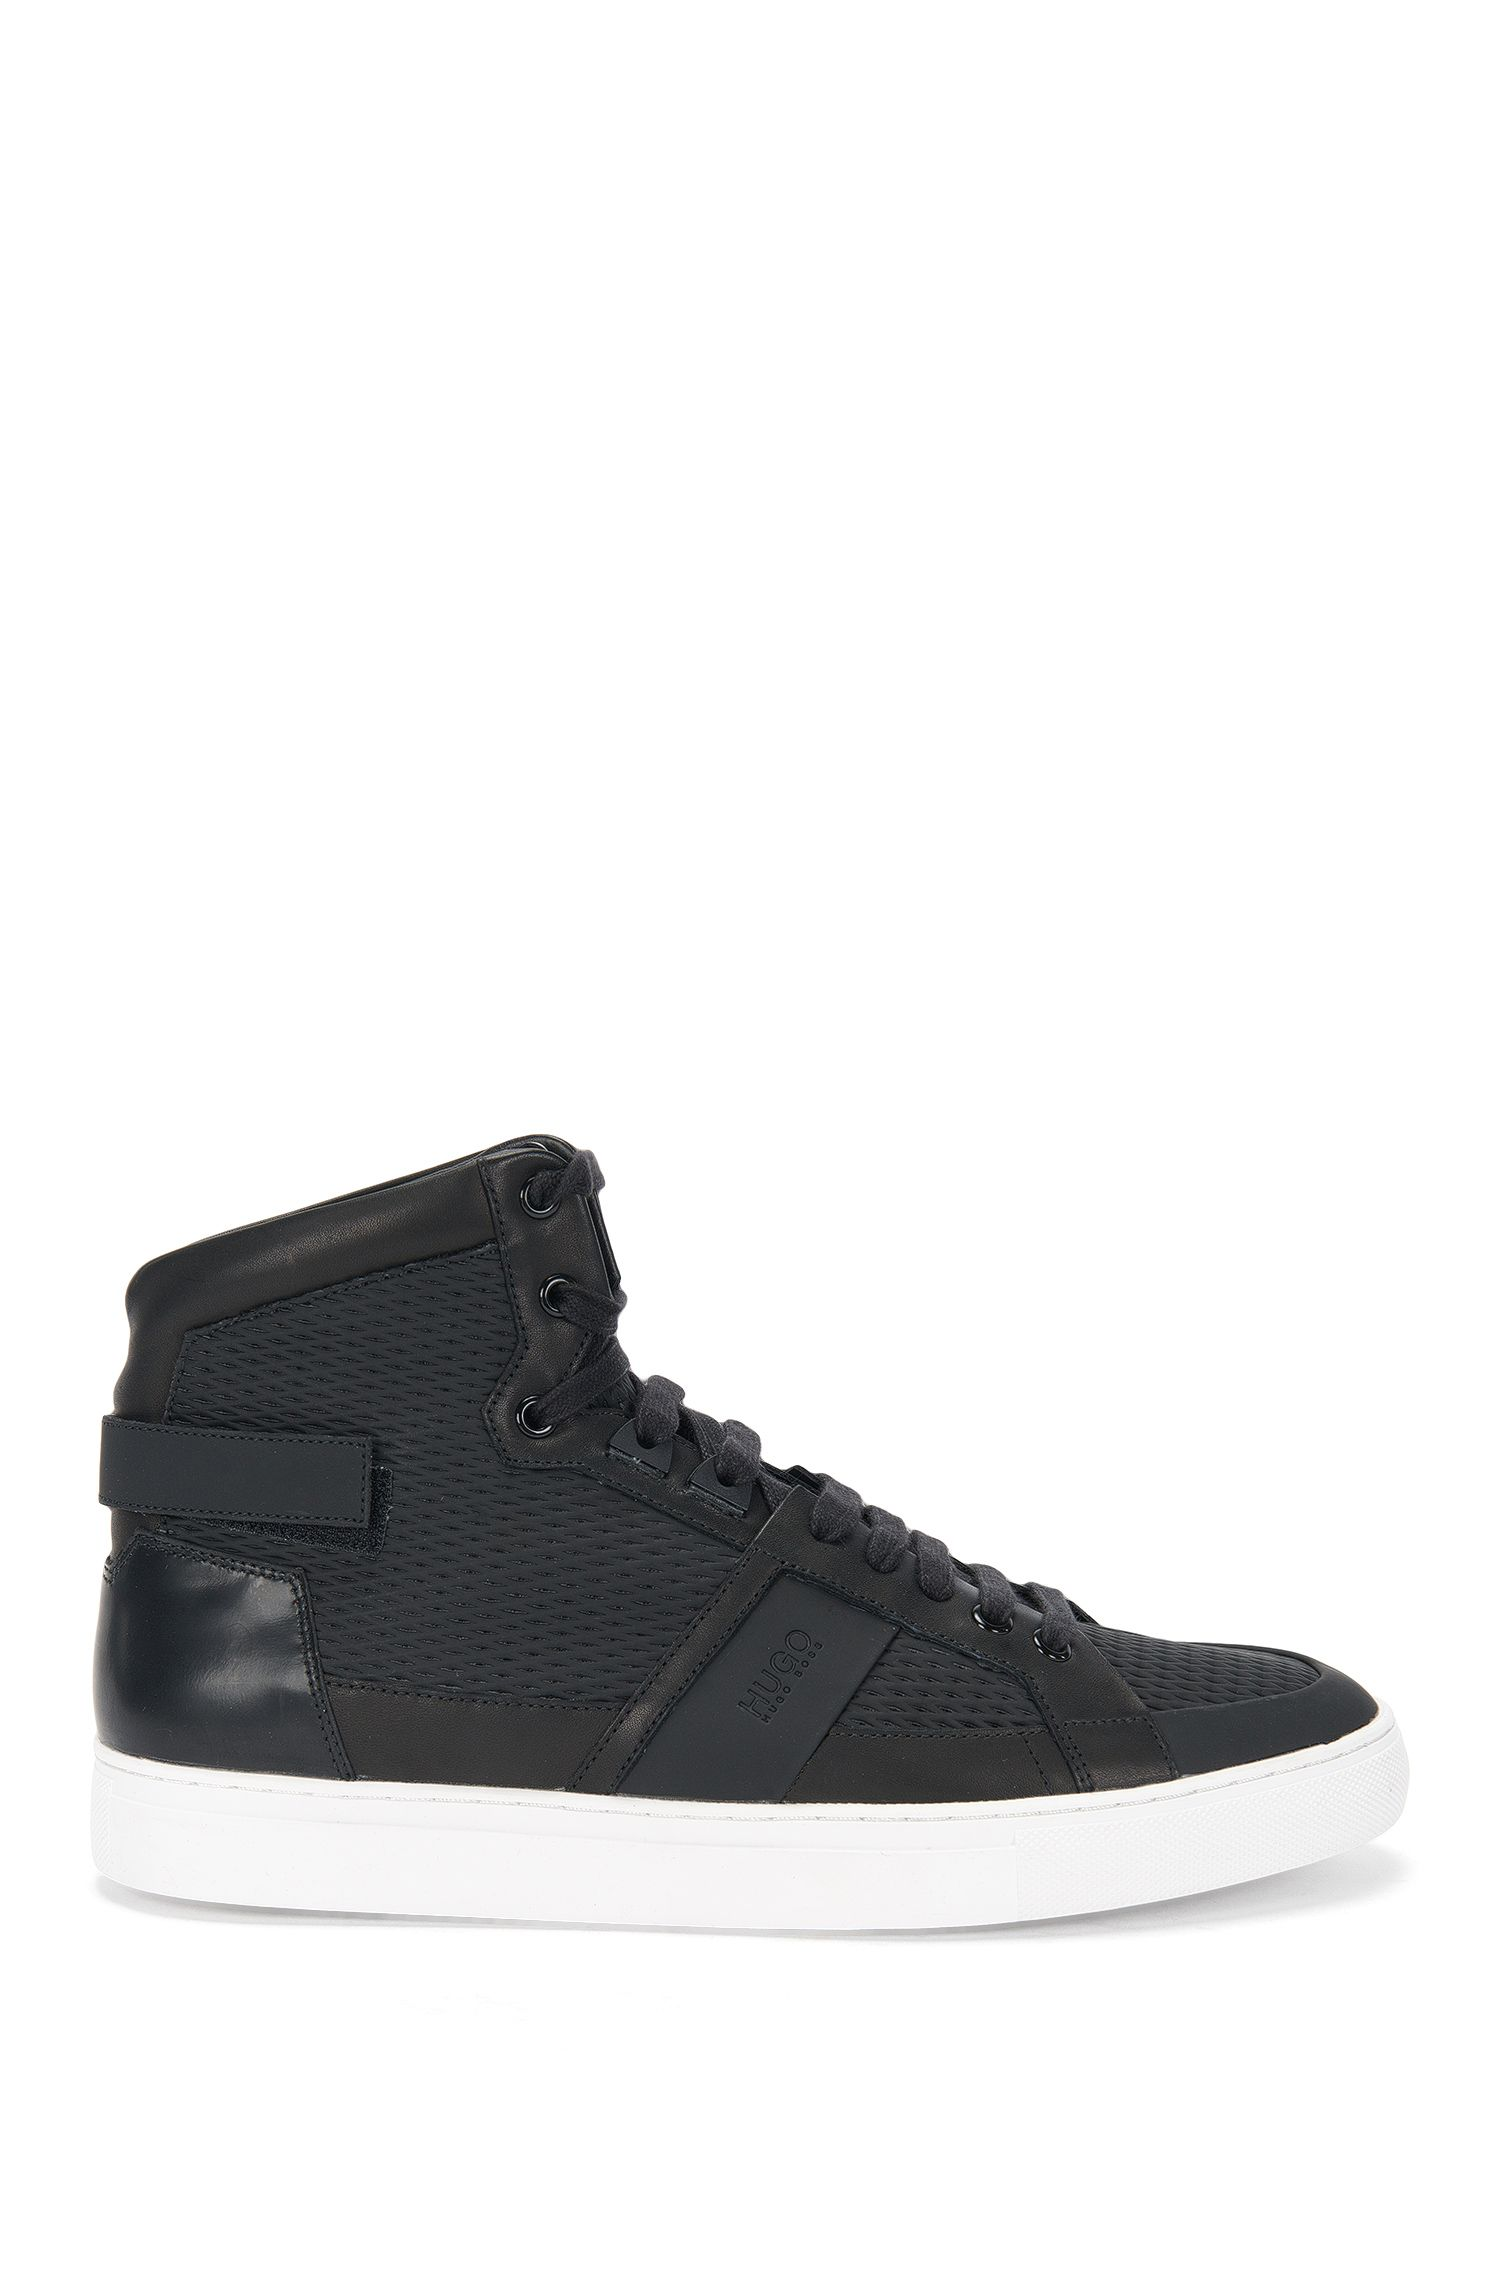 'Futurism Hito ltrb' | Leather High-top Sneakers